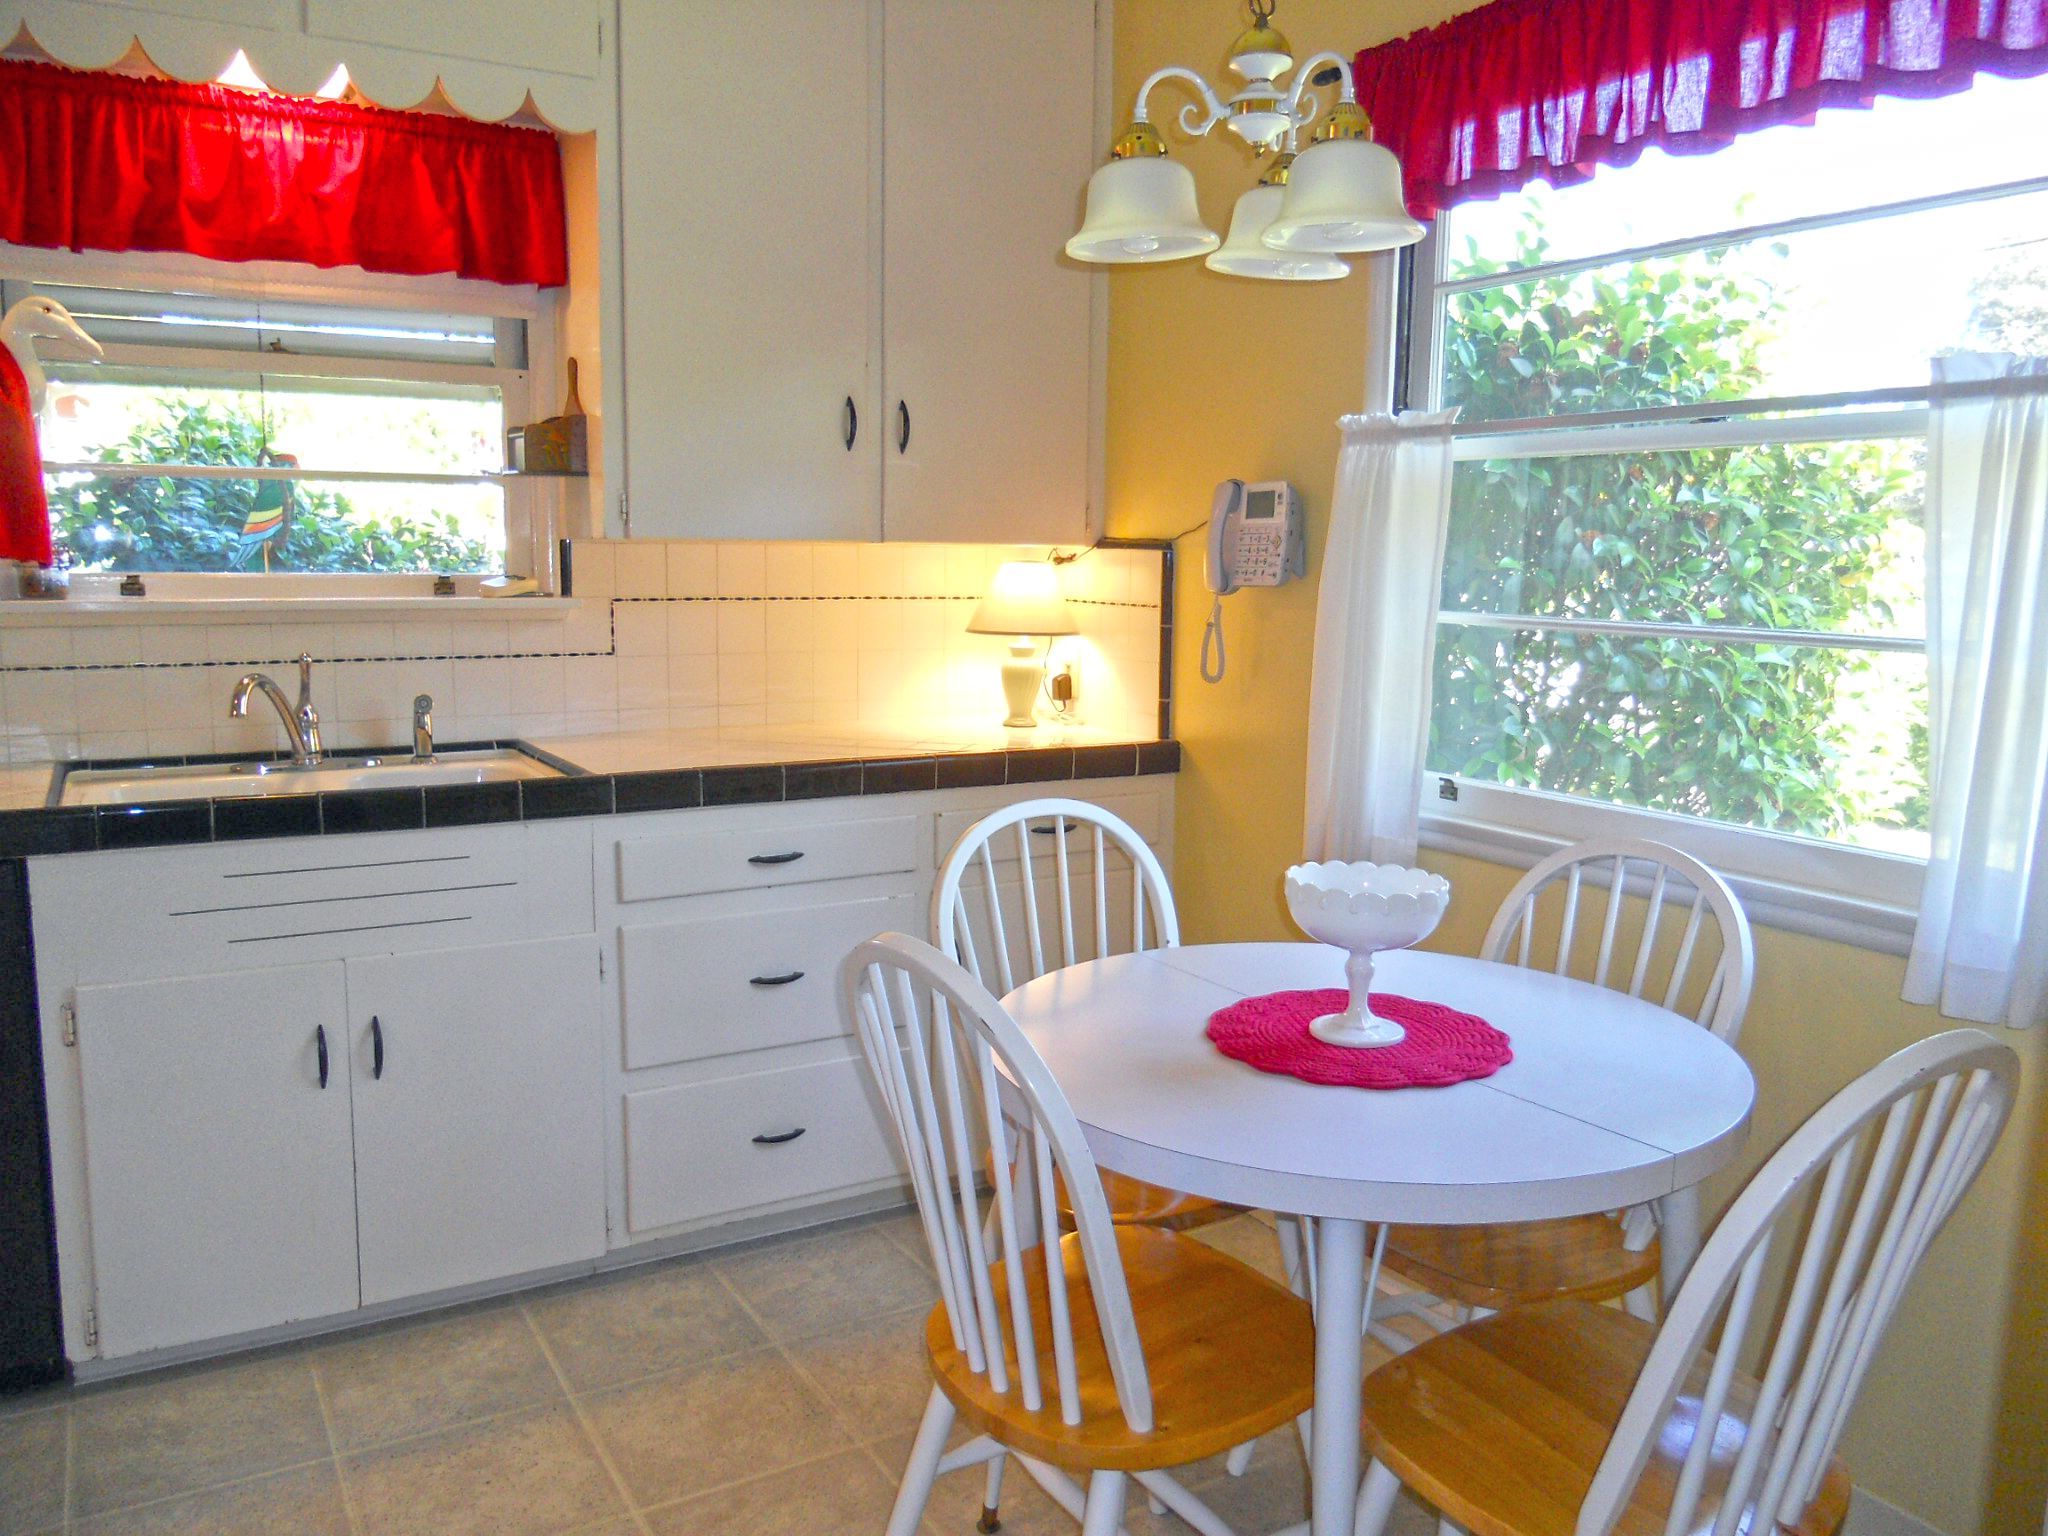 The tile in this kitchen looks new! Such a well-maintained home!!